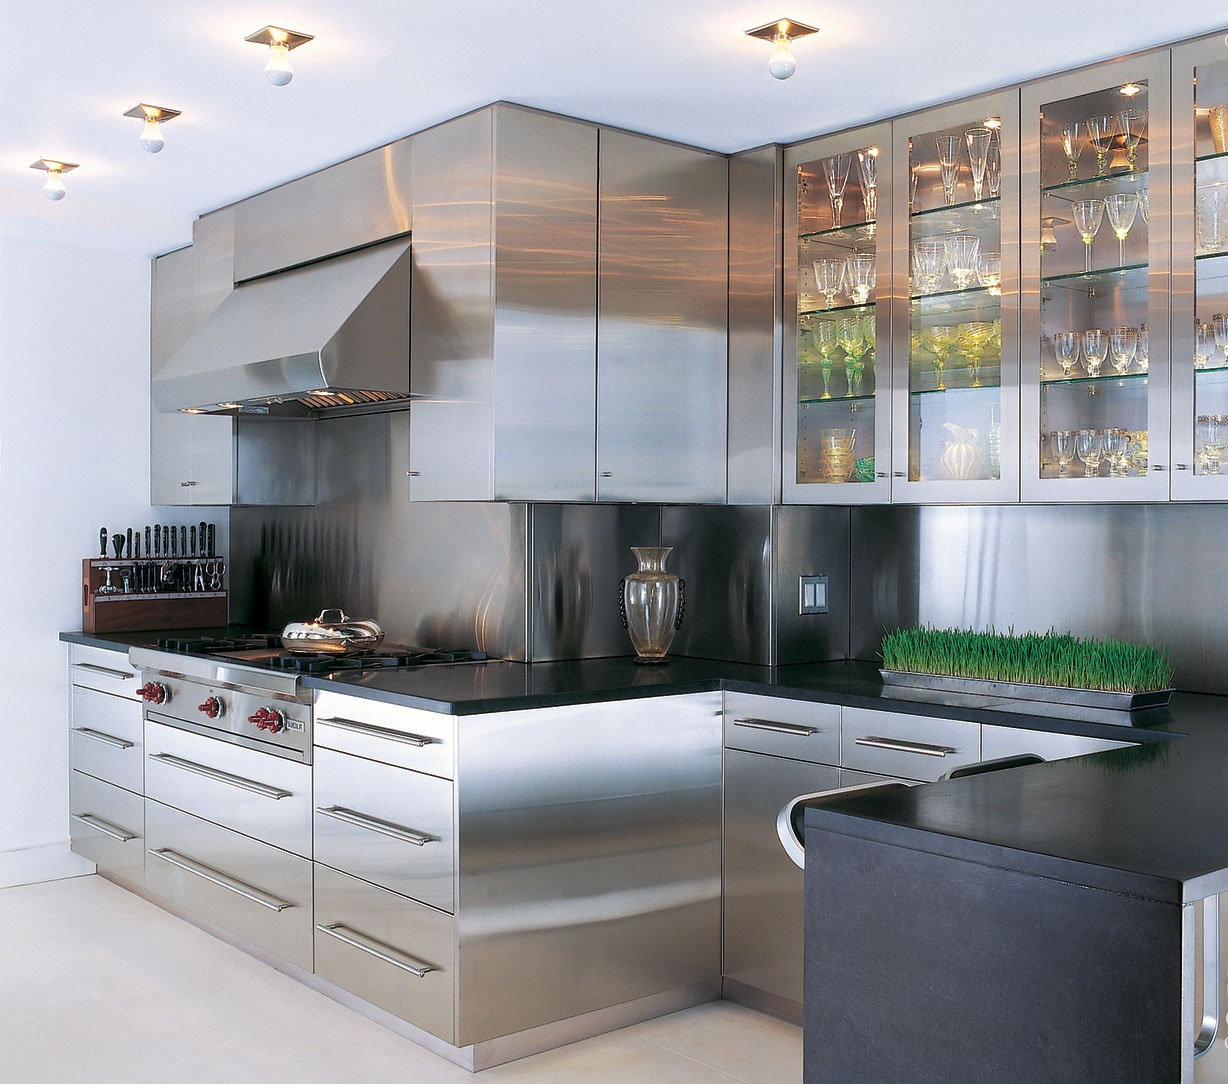 Cozy stainless steel kitchen cabinets stainless steel kitchen llwwcia